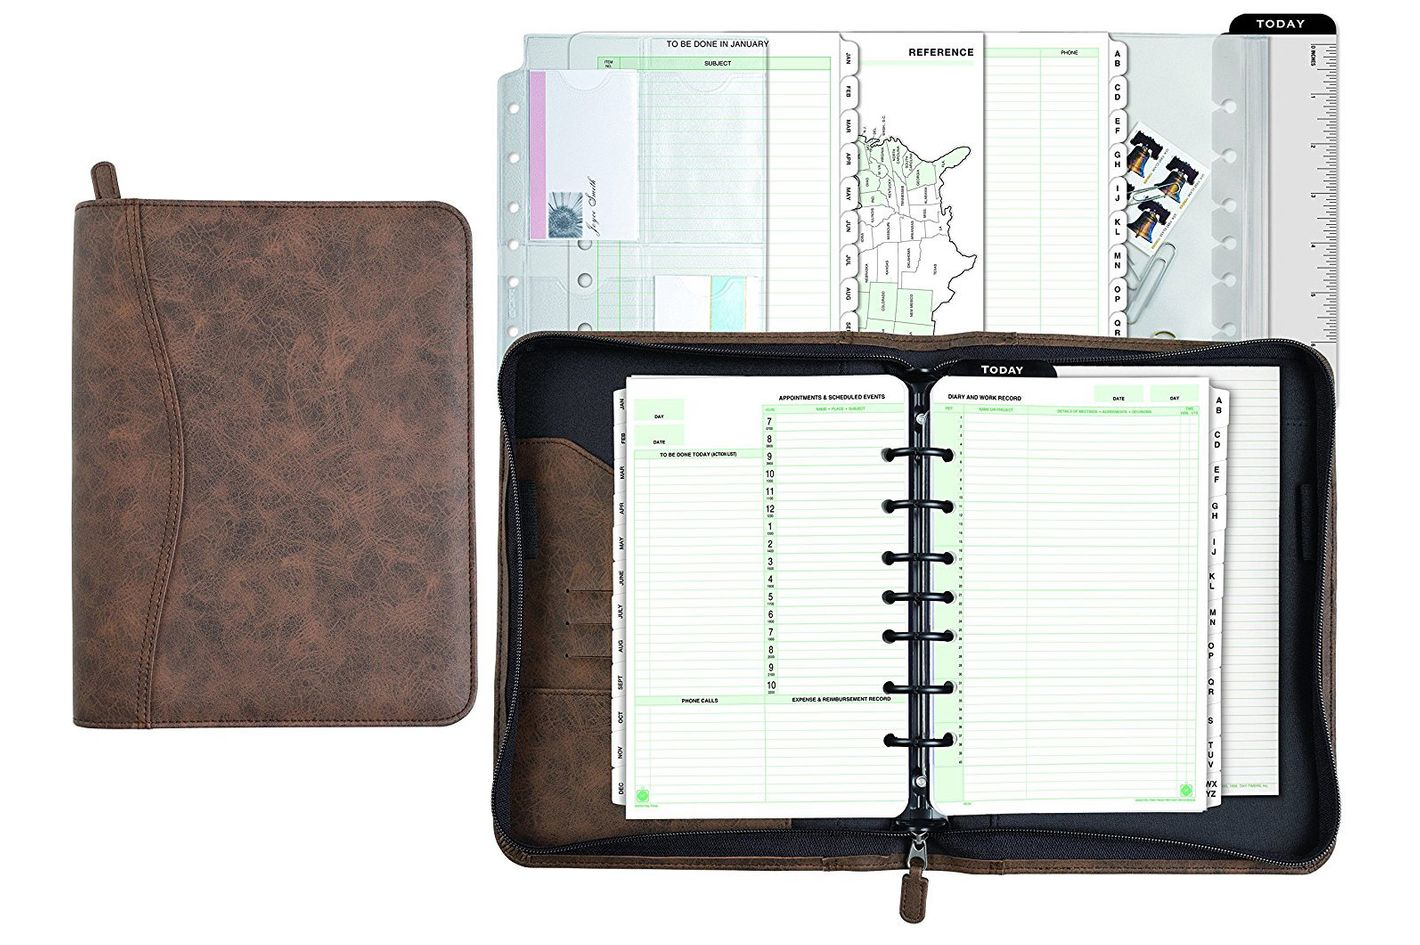 10 Best Planners for 2019, According to Productivity Experts